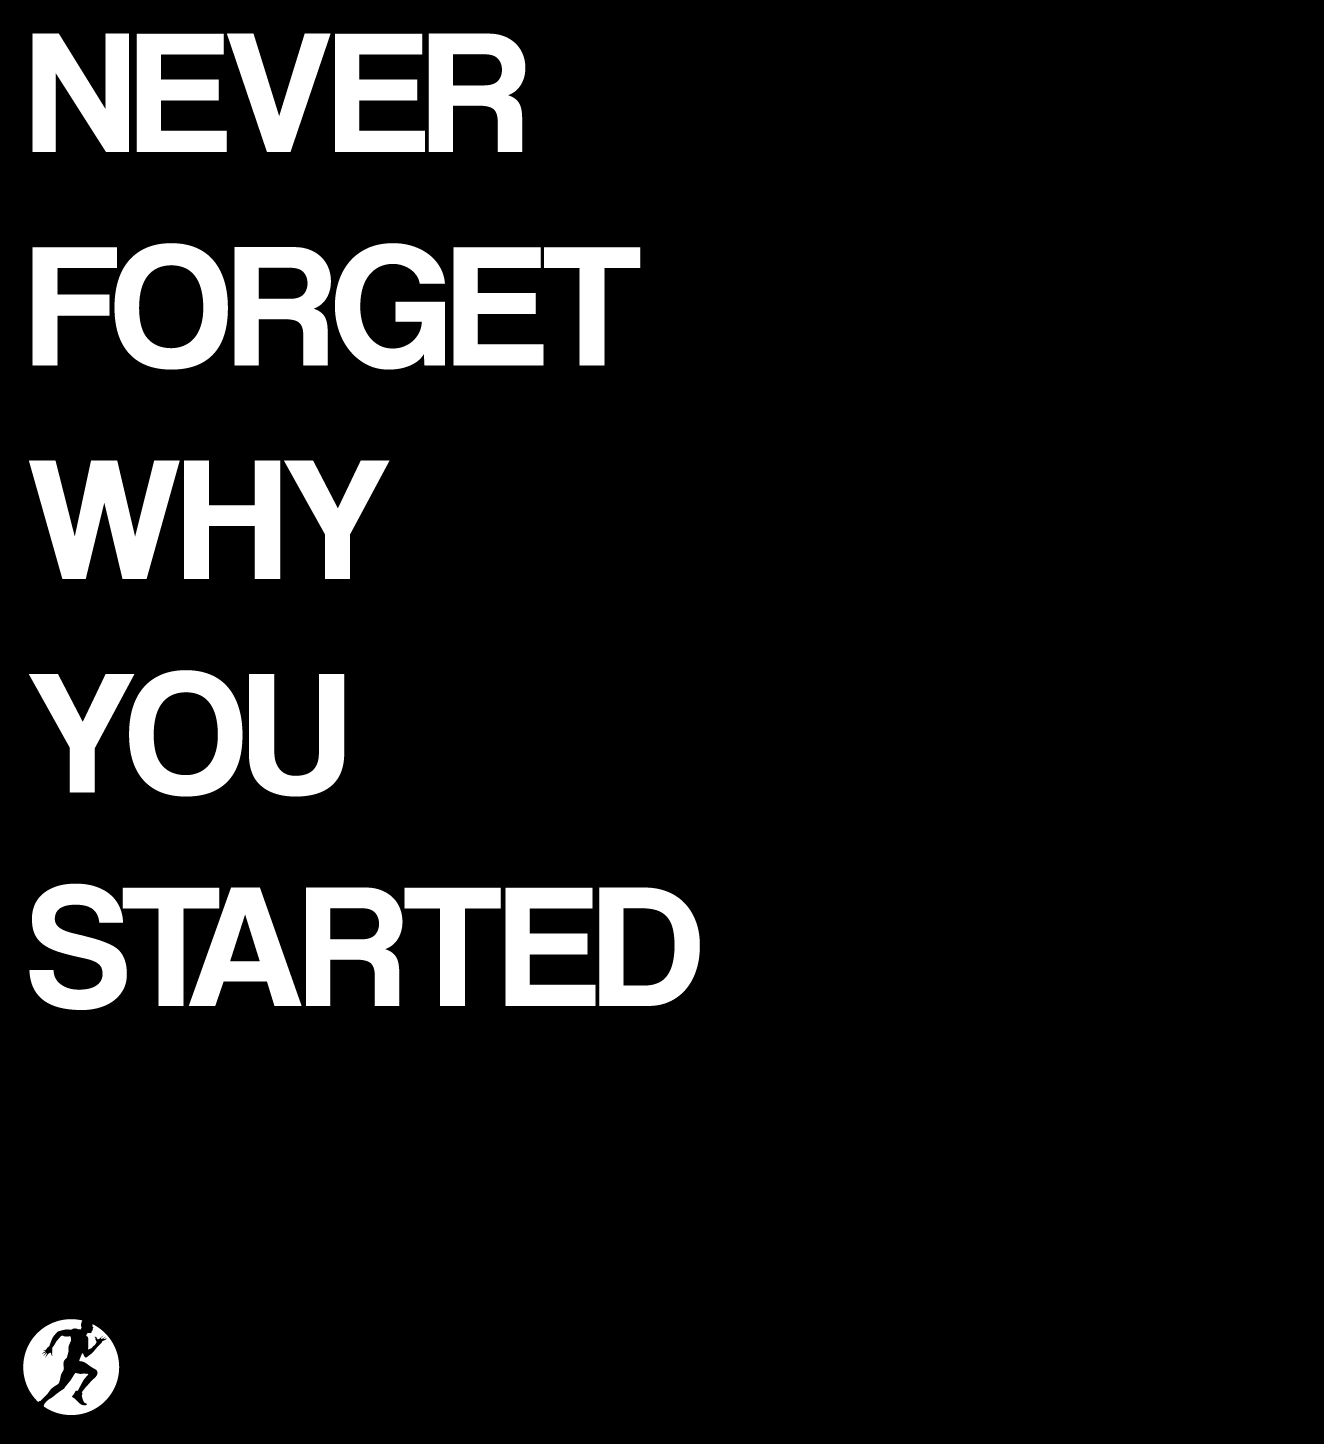 When the road seems long & life gets hard, never forget why you started. Success will arrive soon, just keep competing for it.